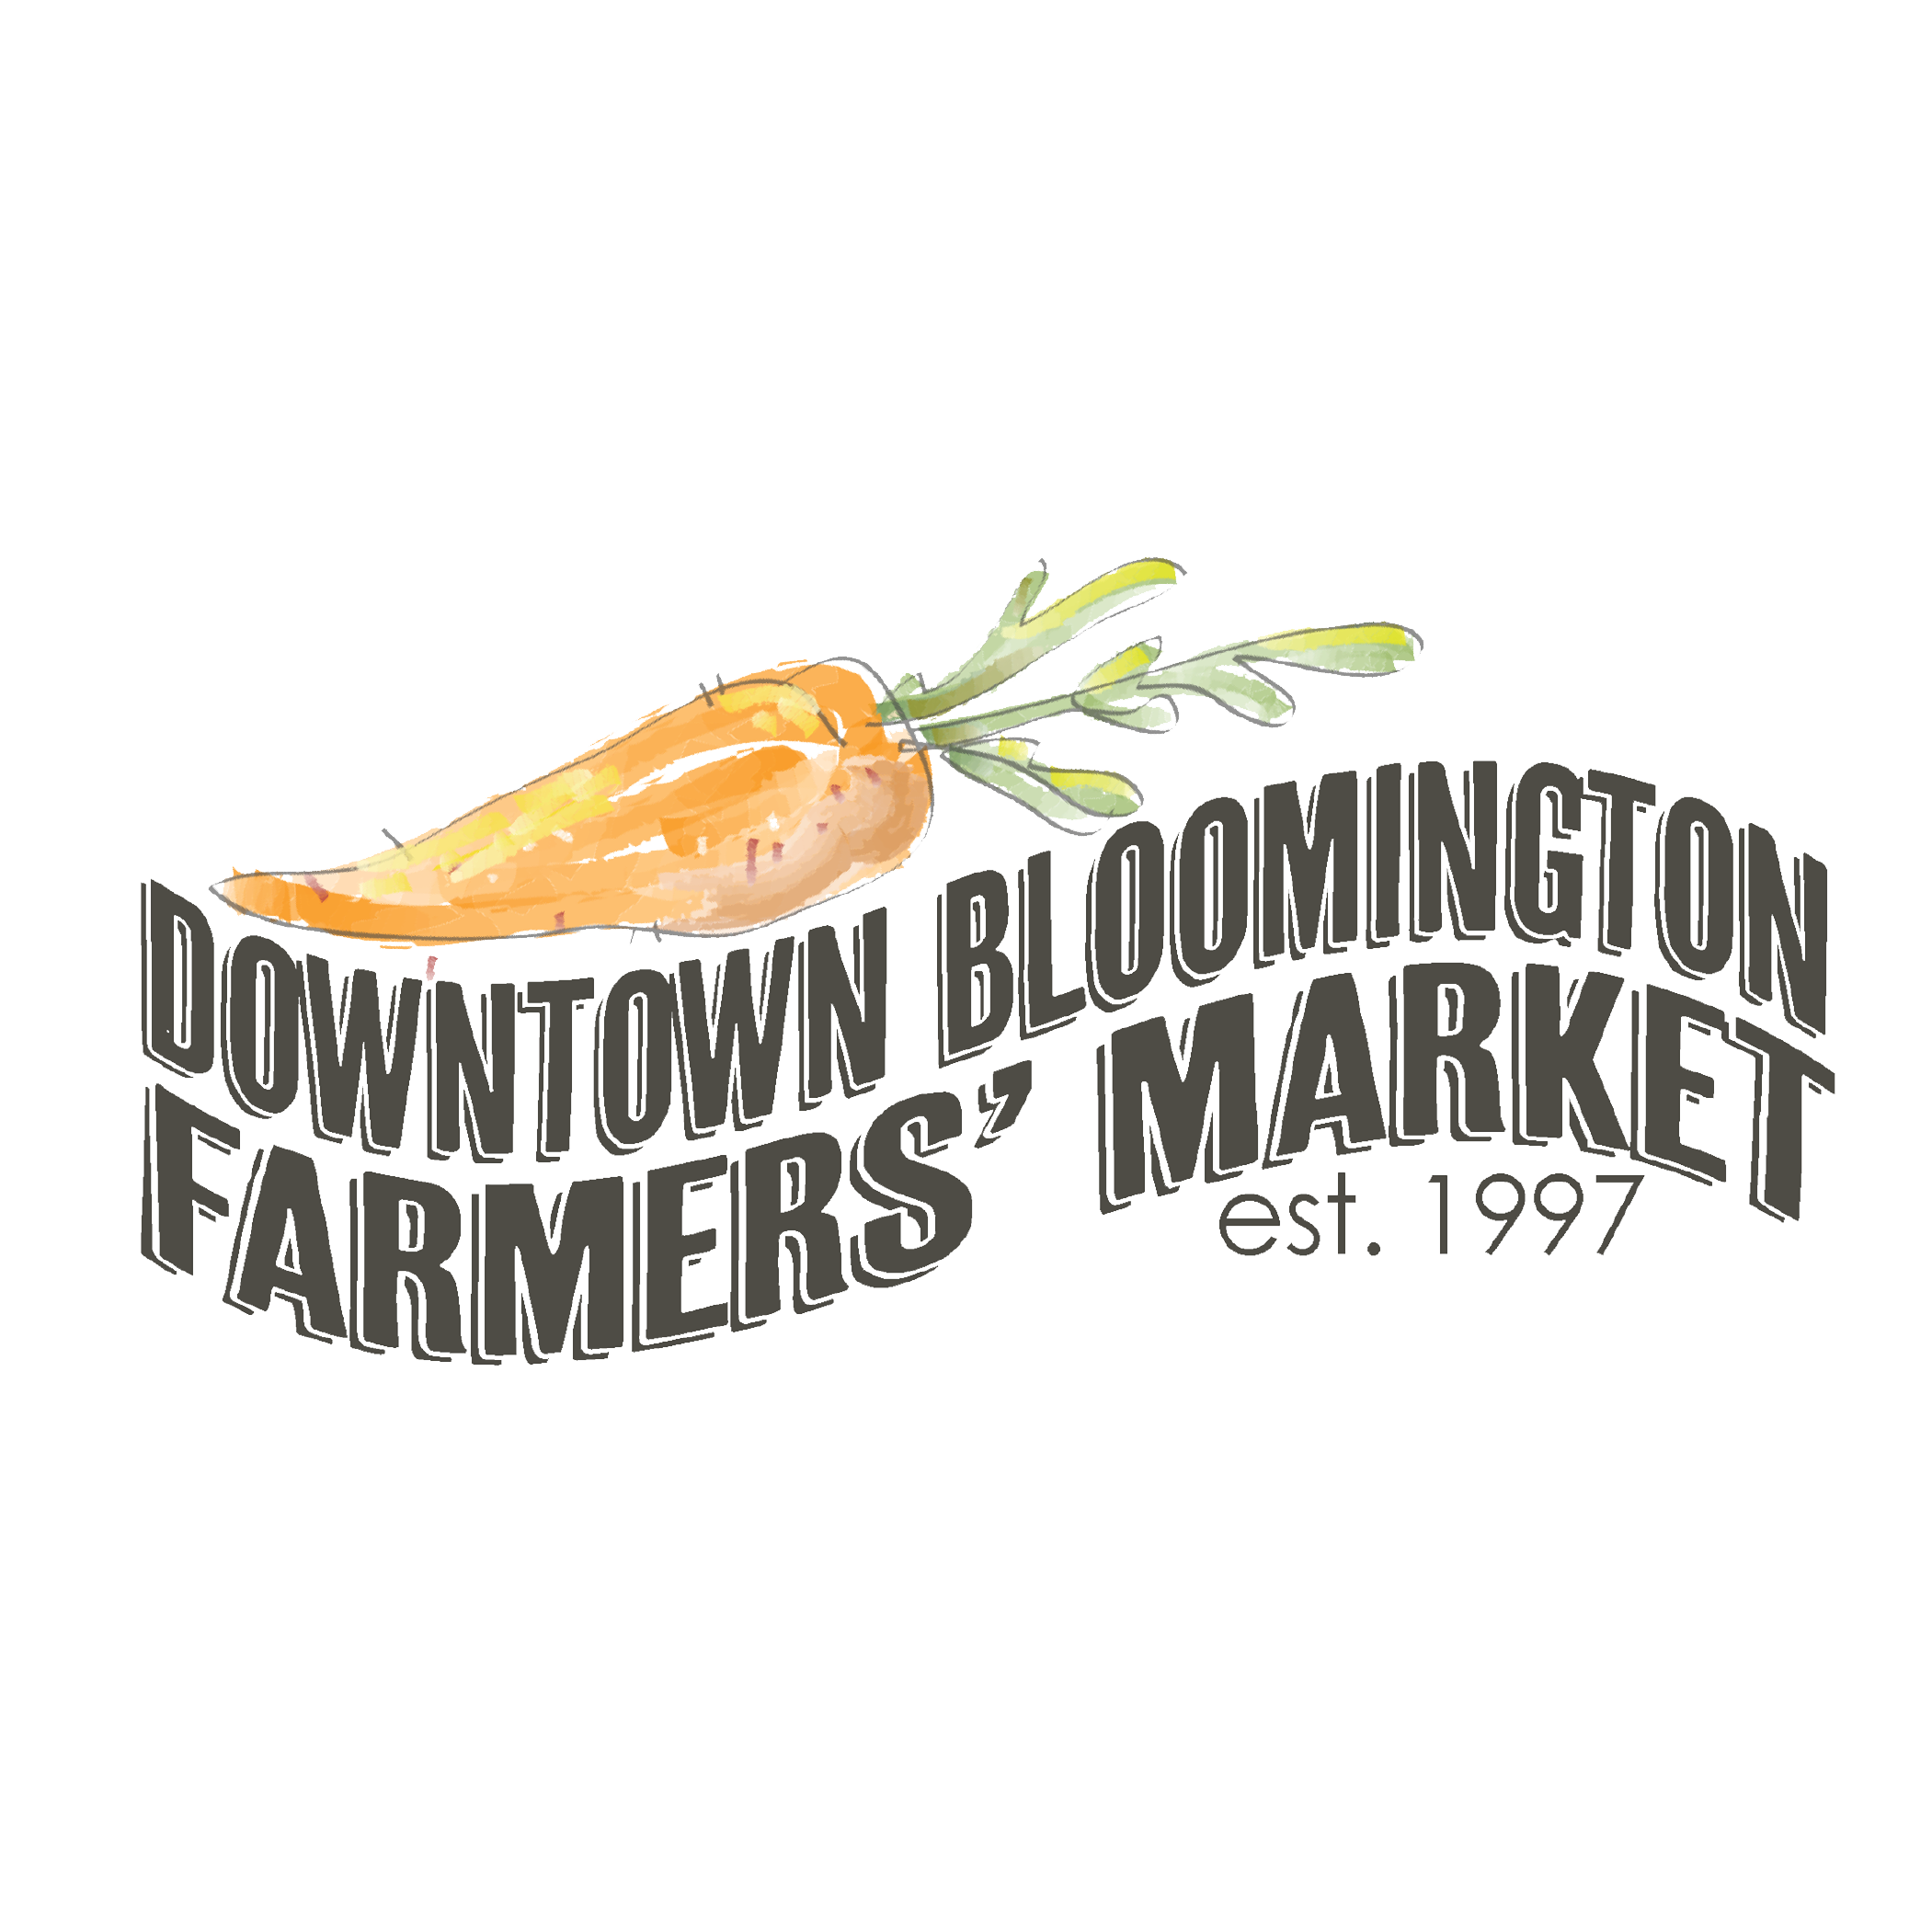 Downtown Bloomington Farmers Market